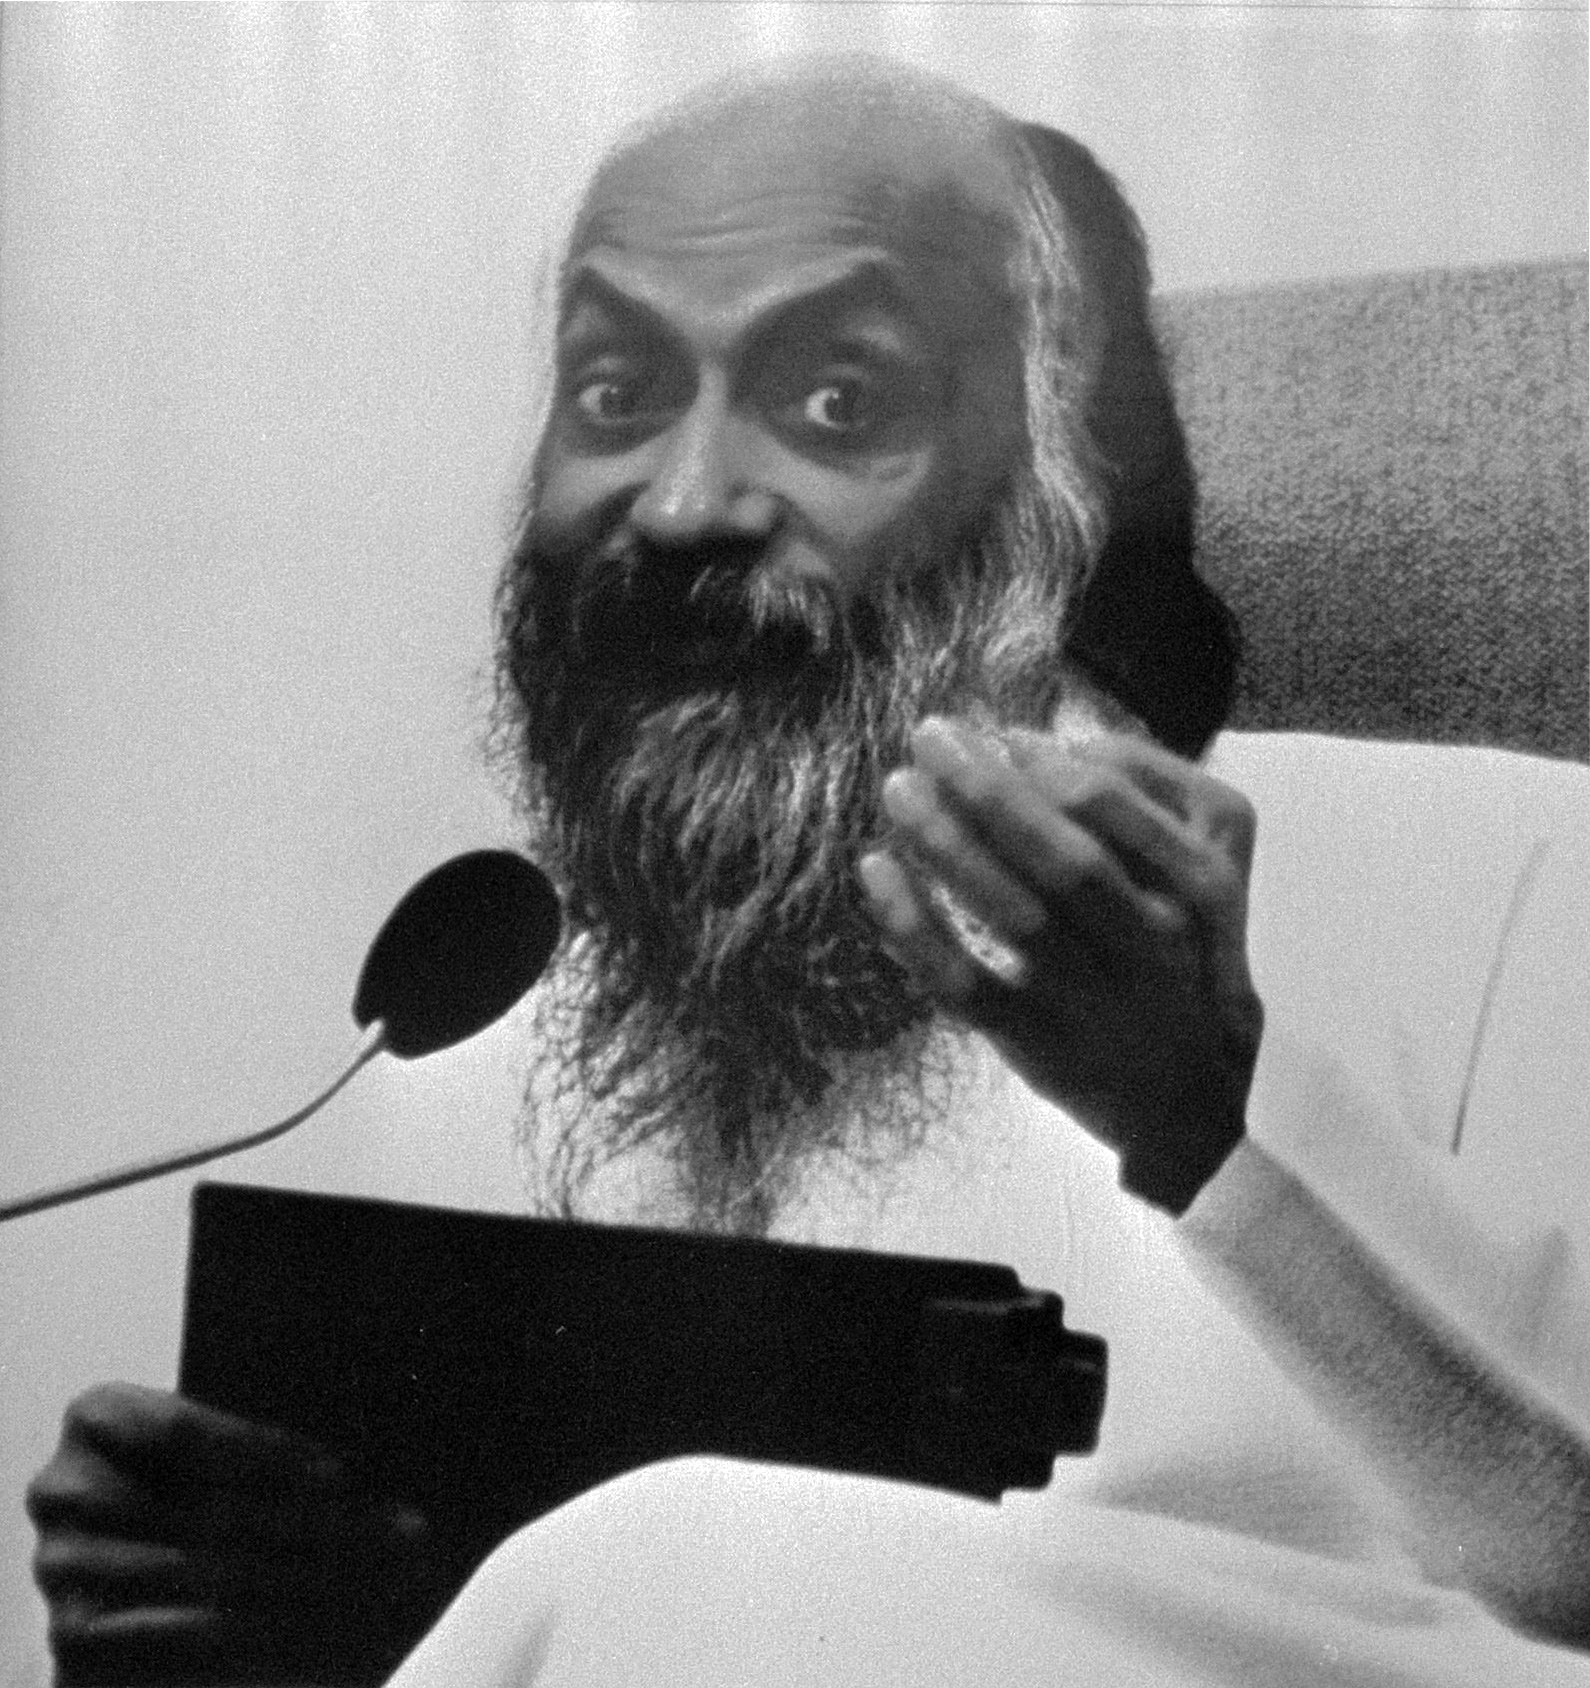 Bhagwan Shree Rajneesh, Osho. The leader of the Rajneeshee cult.